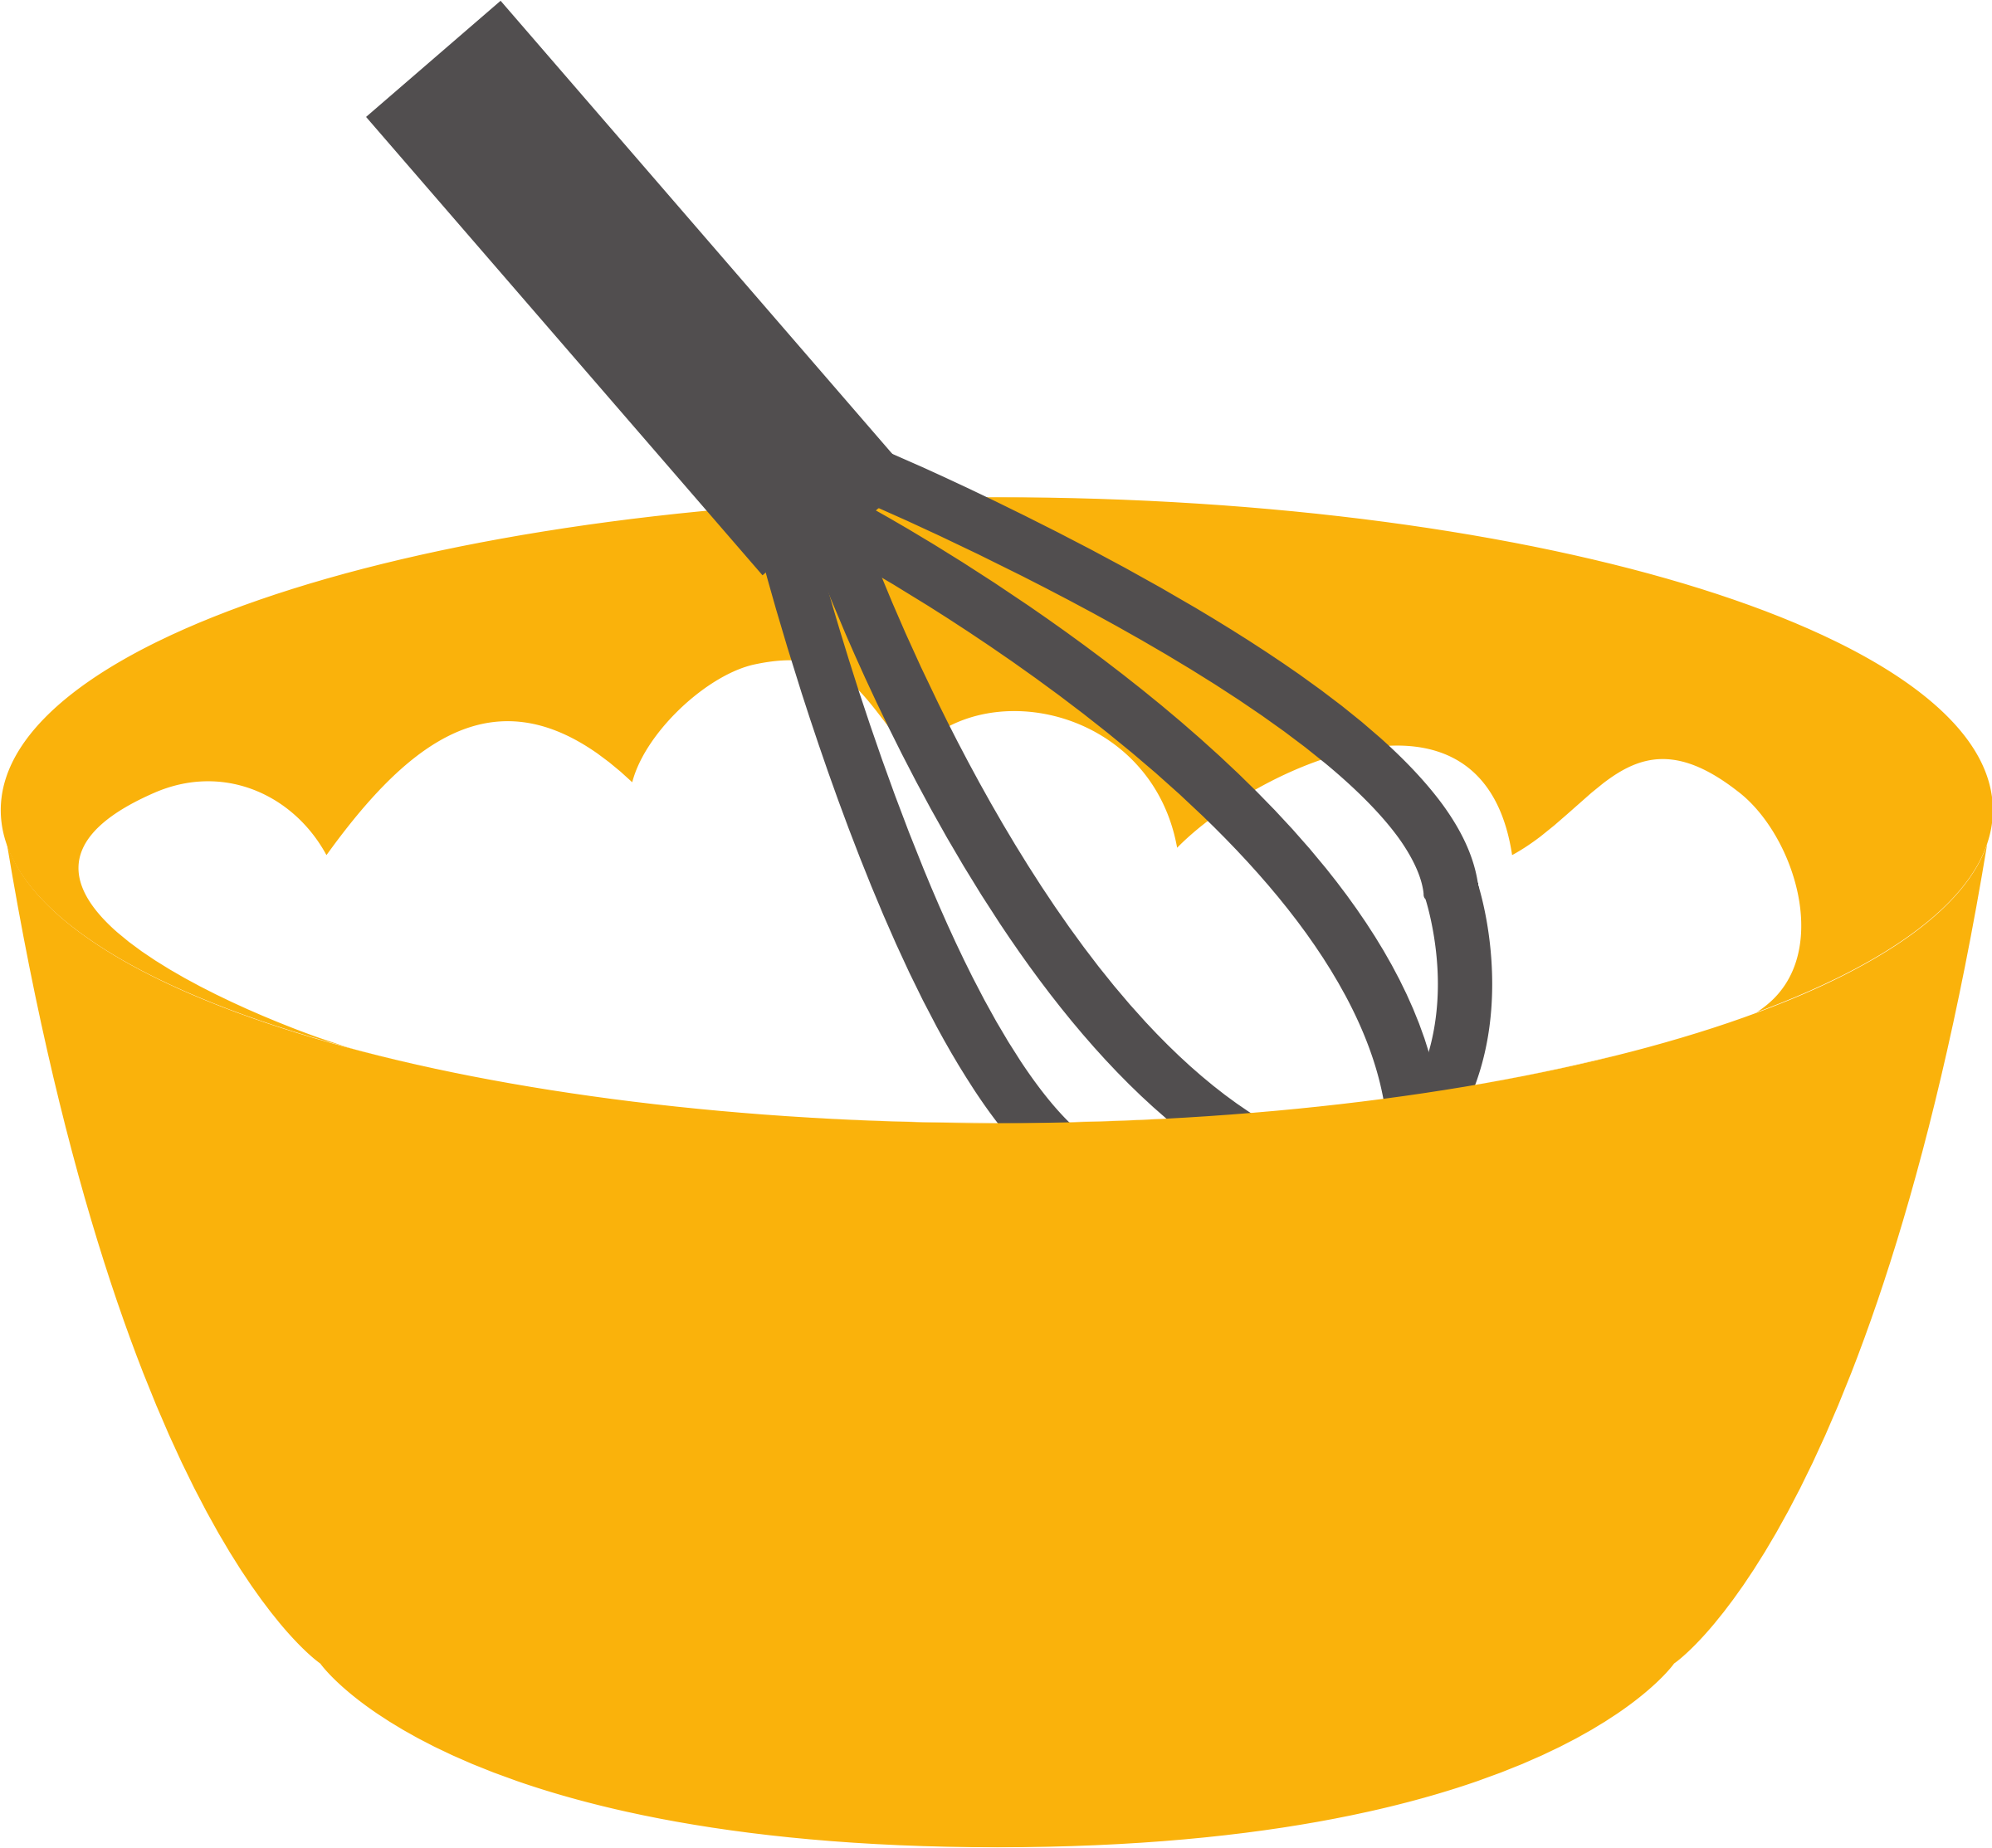 clip art download Baking clipart. Whisk bowl kitchen utensil.